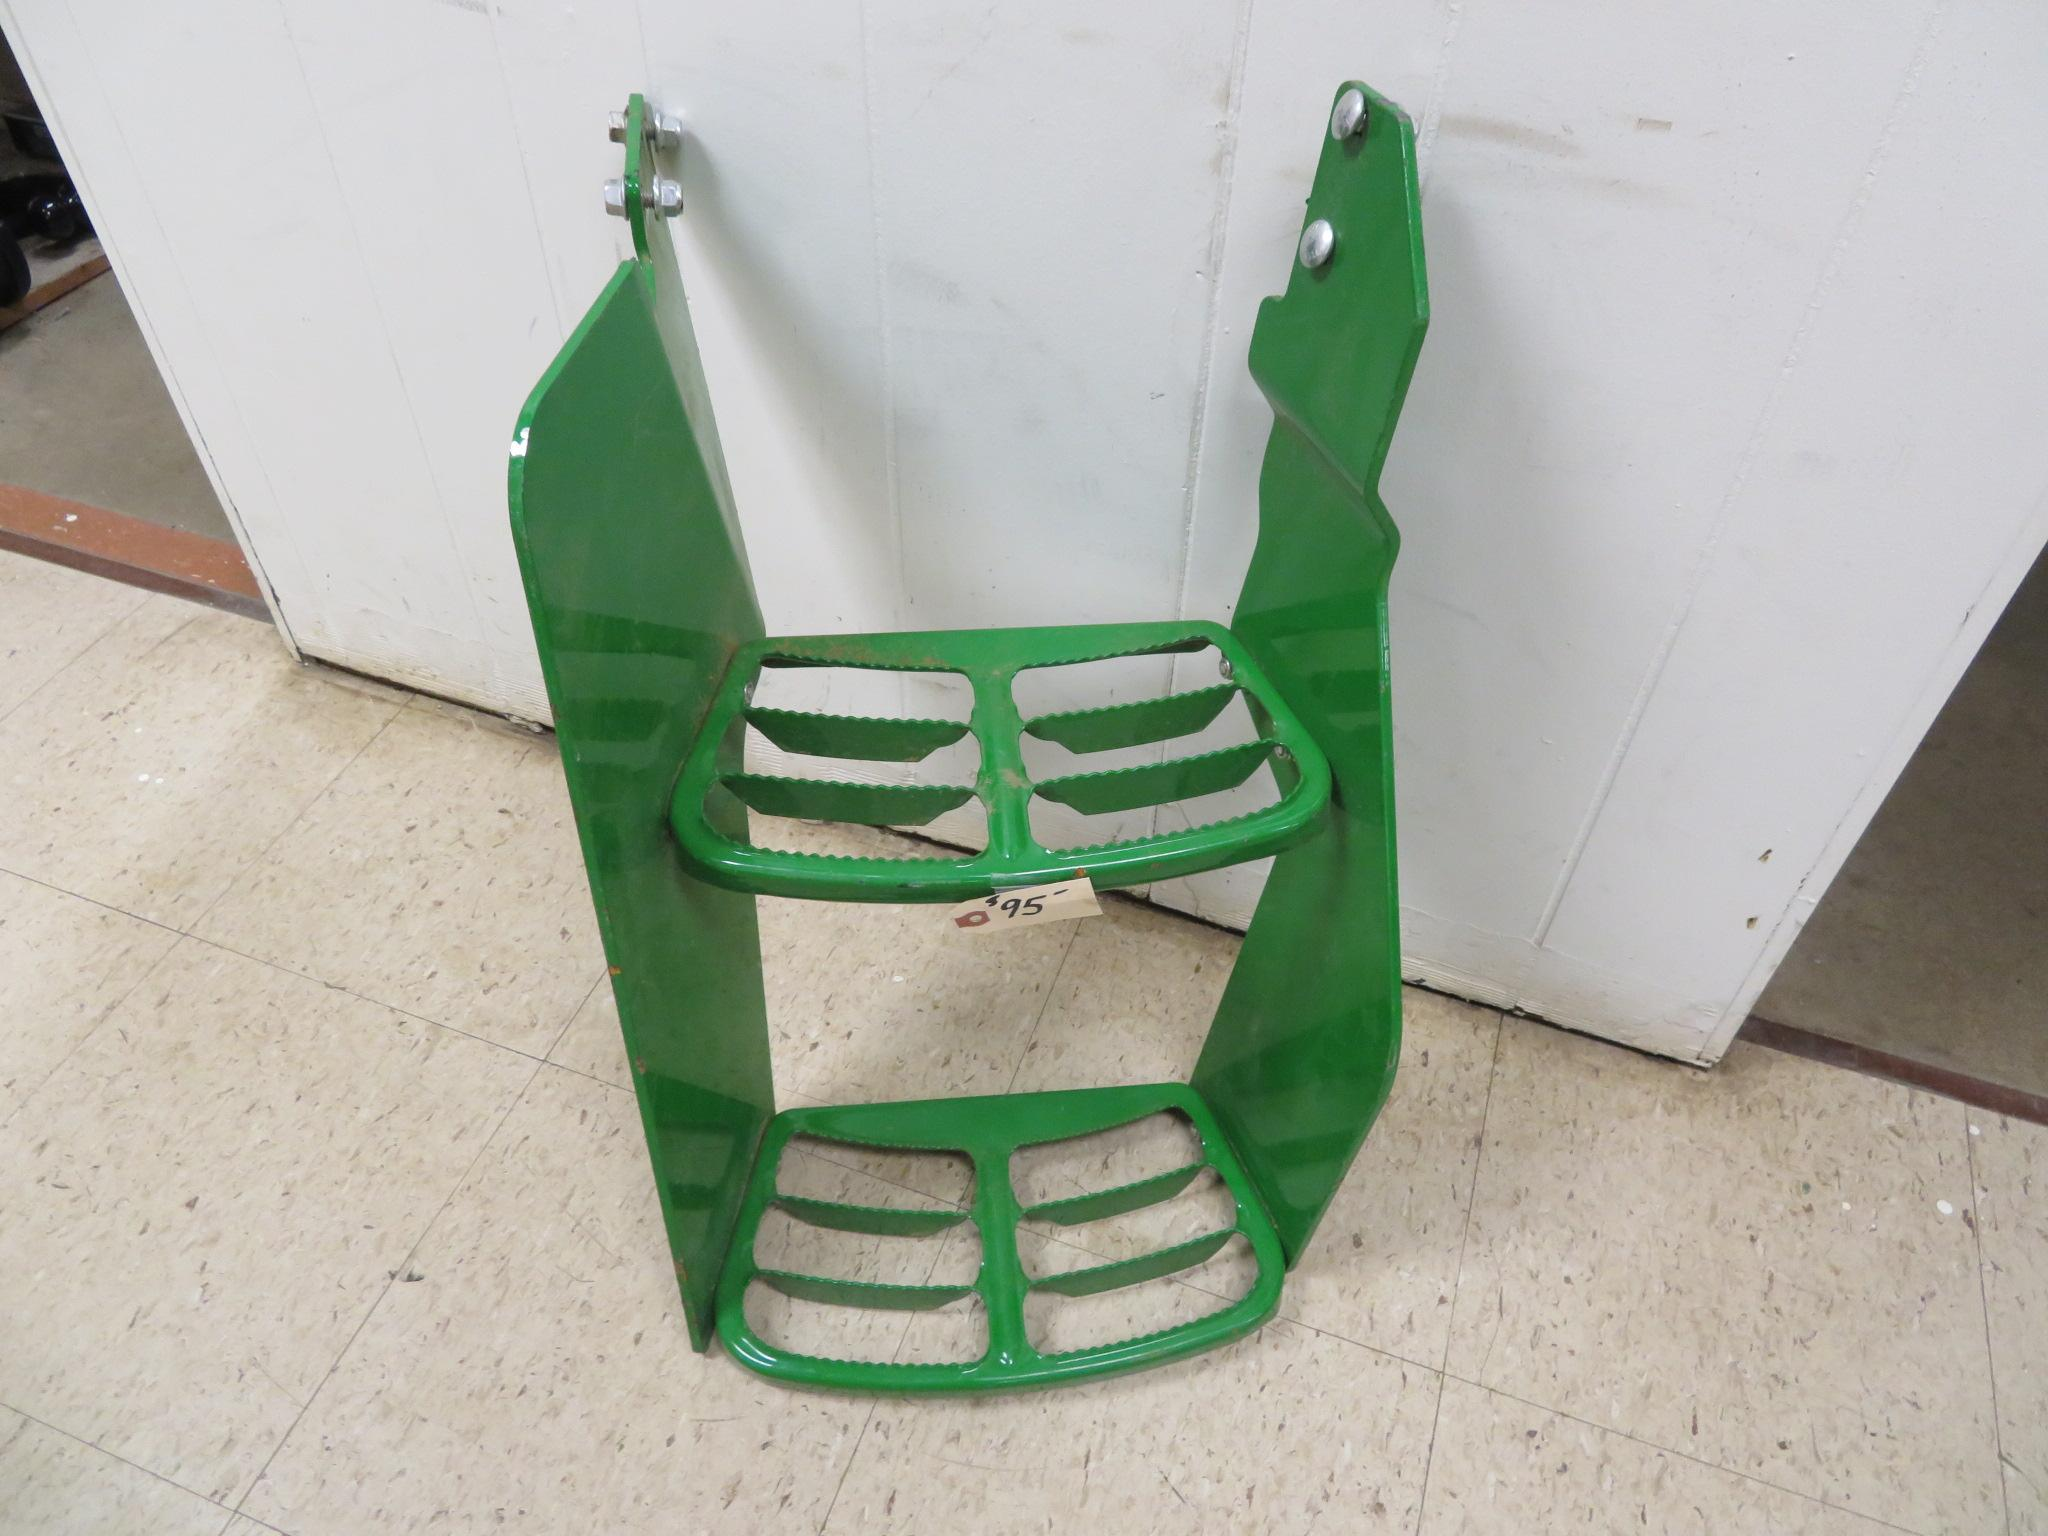 Tractor Step for John Deere Tractor